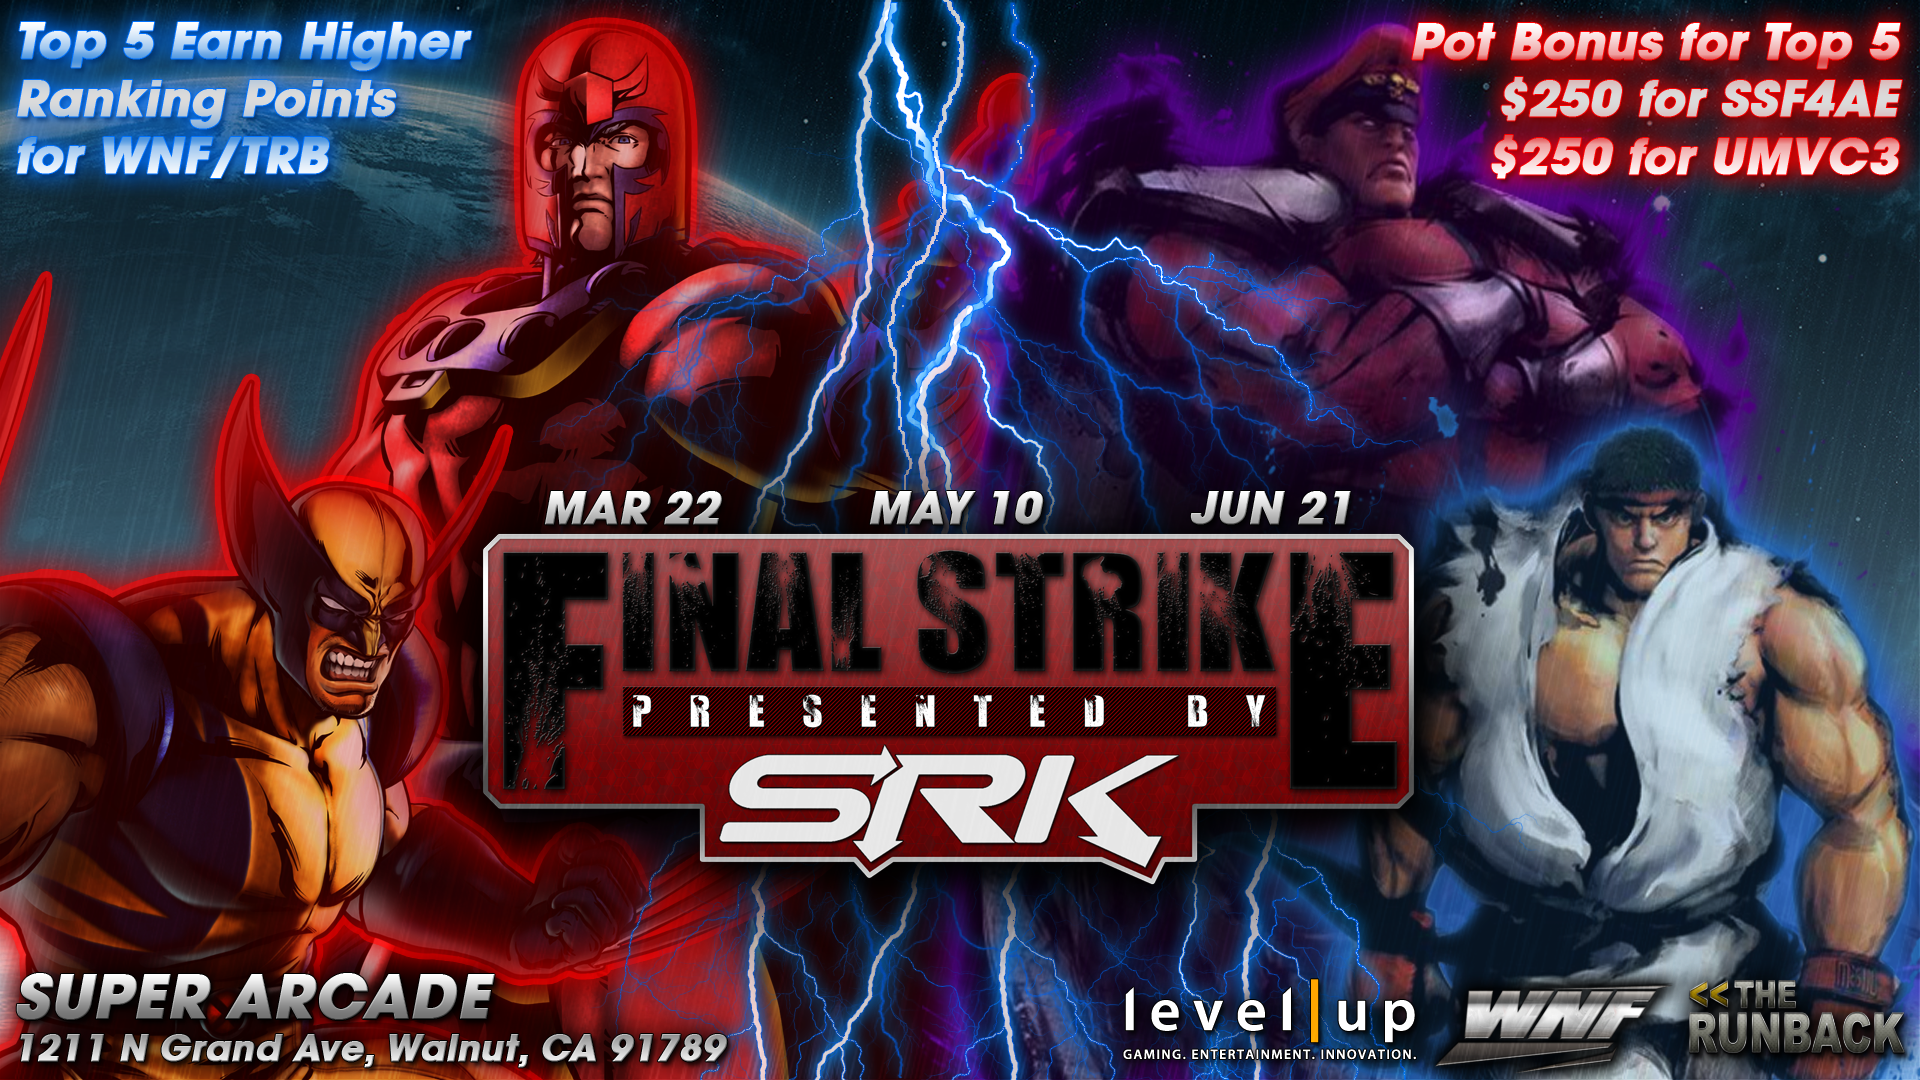 Final Strike Presented by SRK  Level Up and Shoryuken.com(SRK), the official sponsor of Weds Night Fights and The Runback, are bringing a unique tournament series for the community with […]